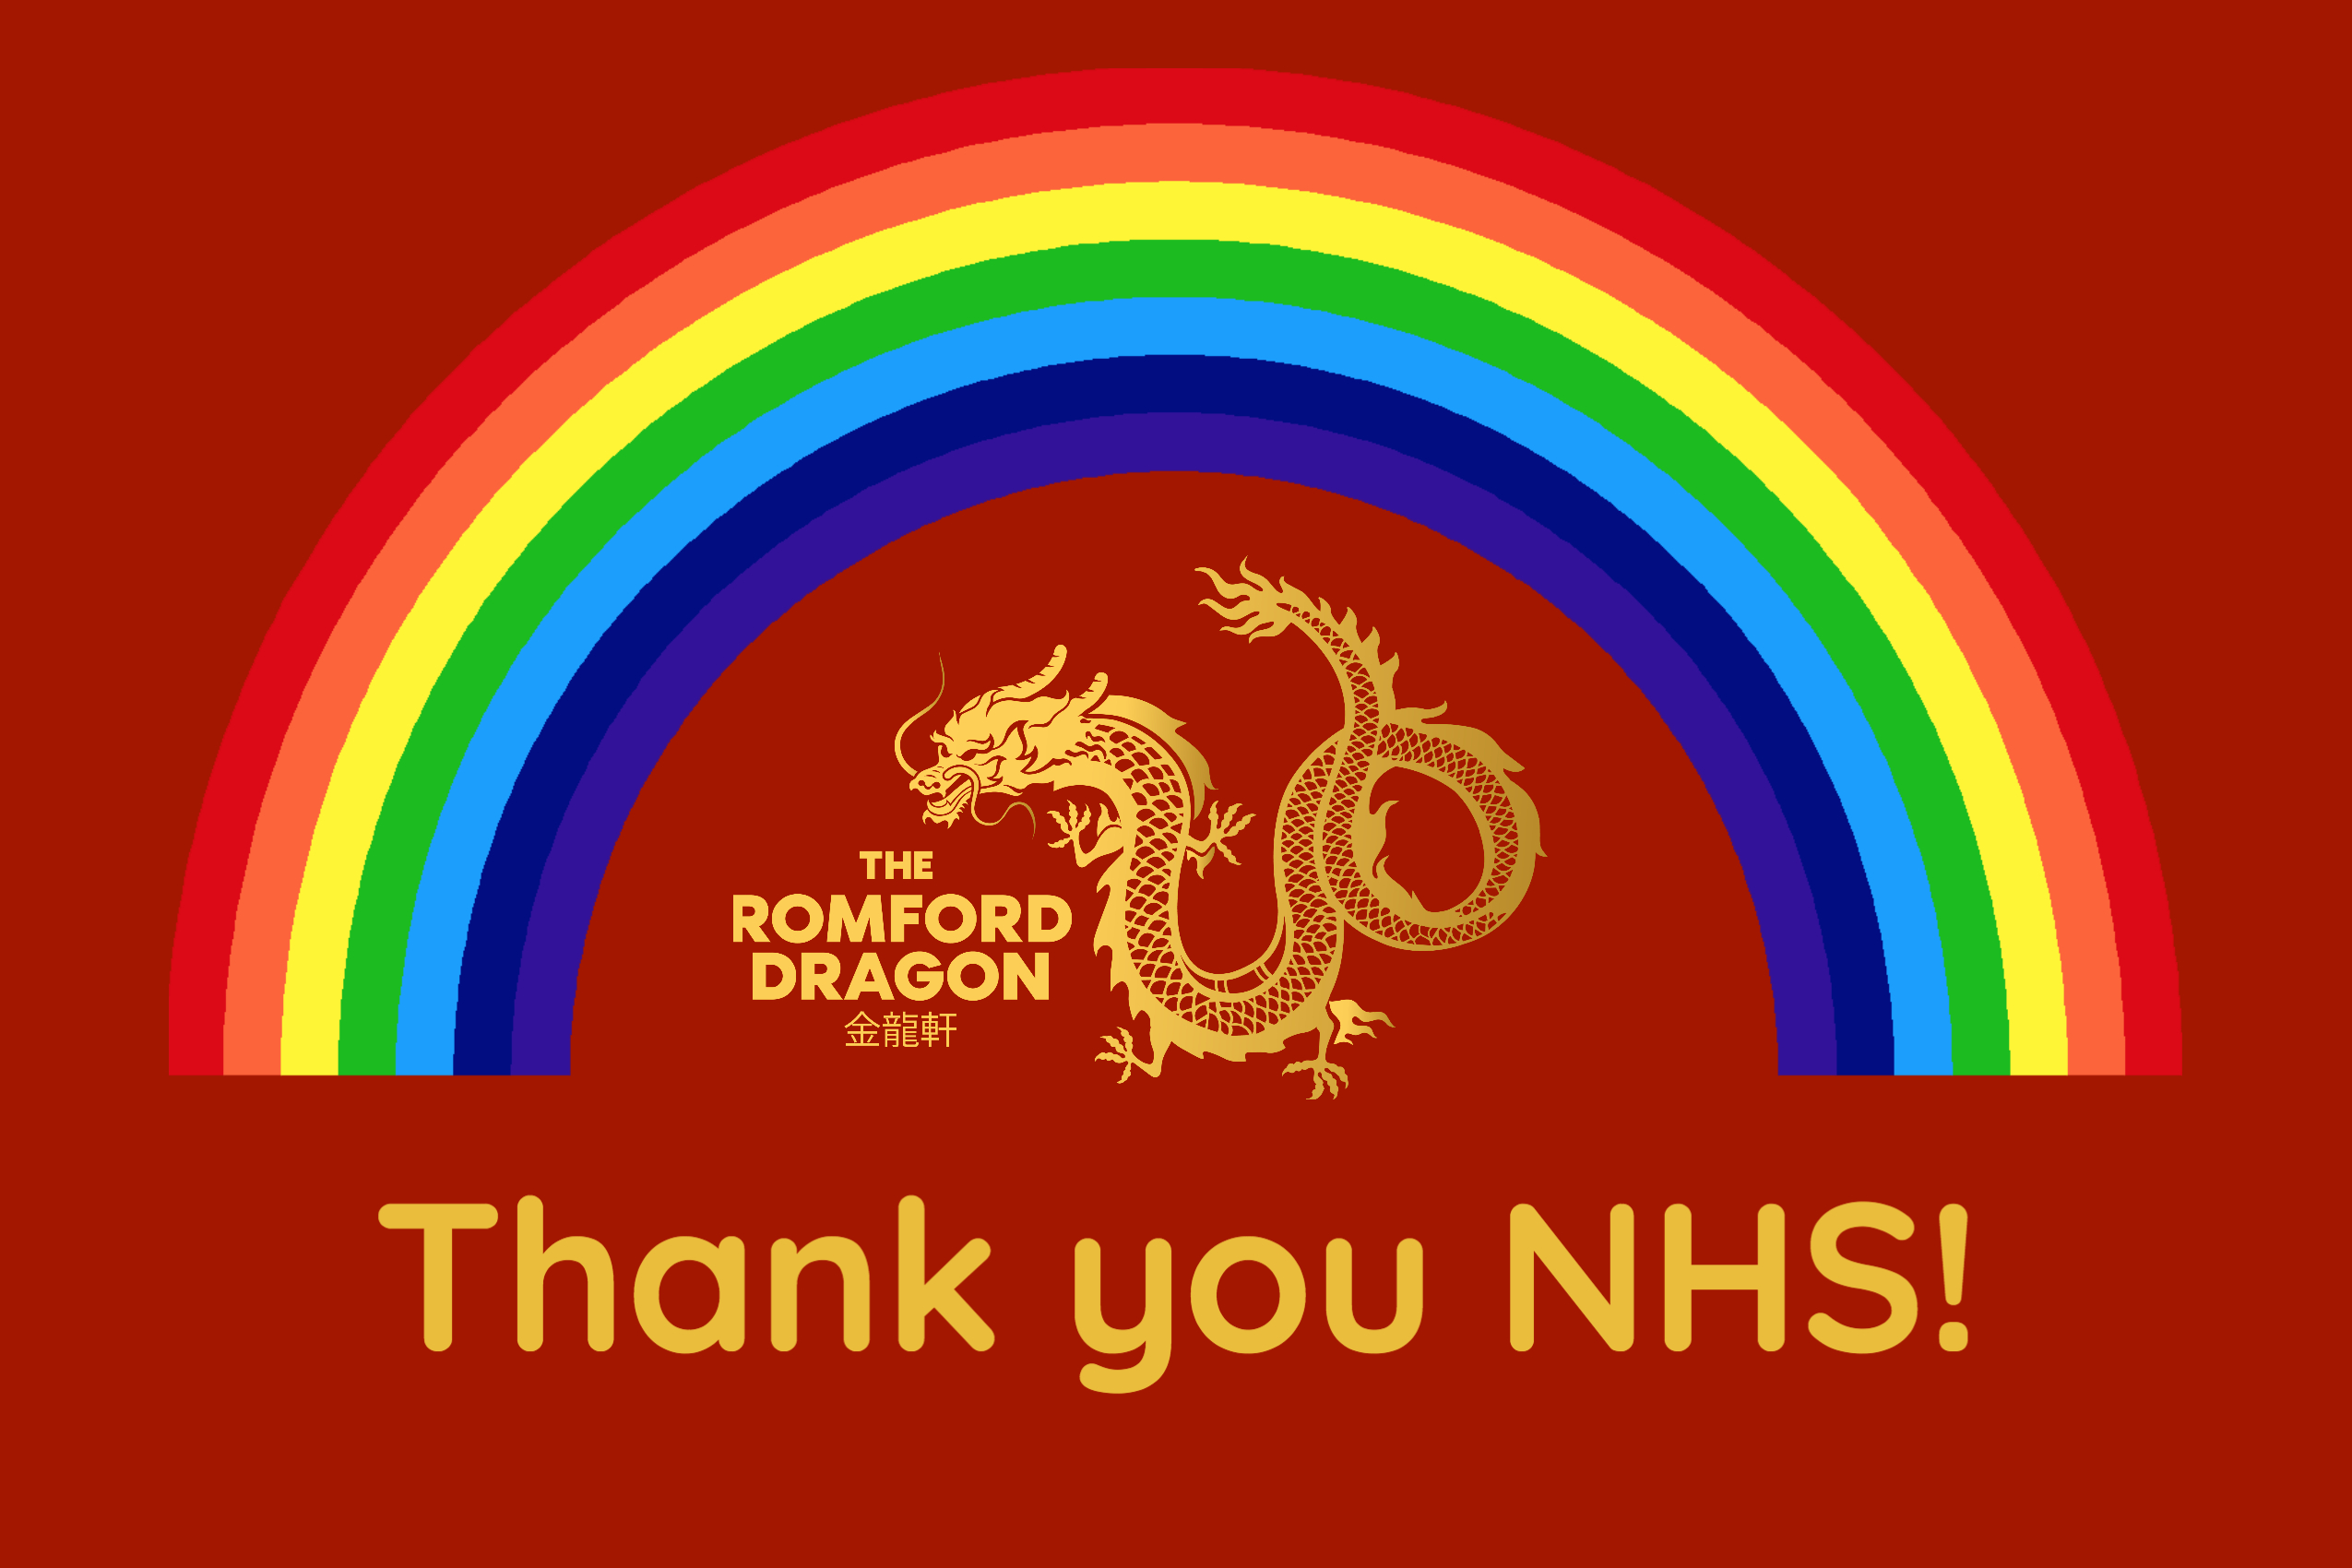 Thank you NHS The Romford Dragon logo with a Rainbow at the top